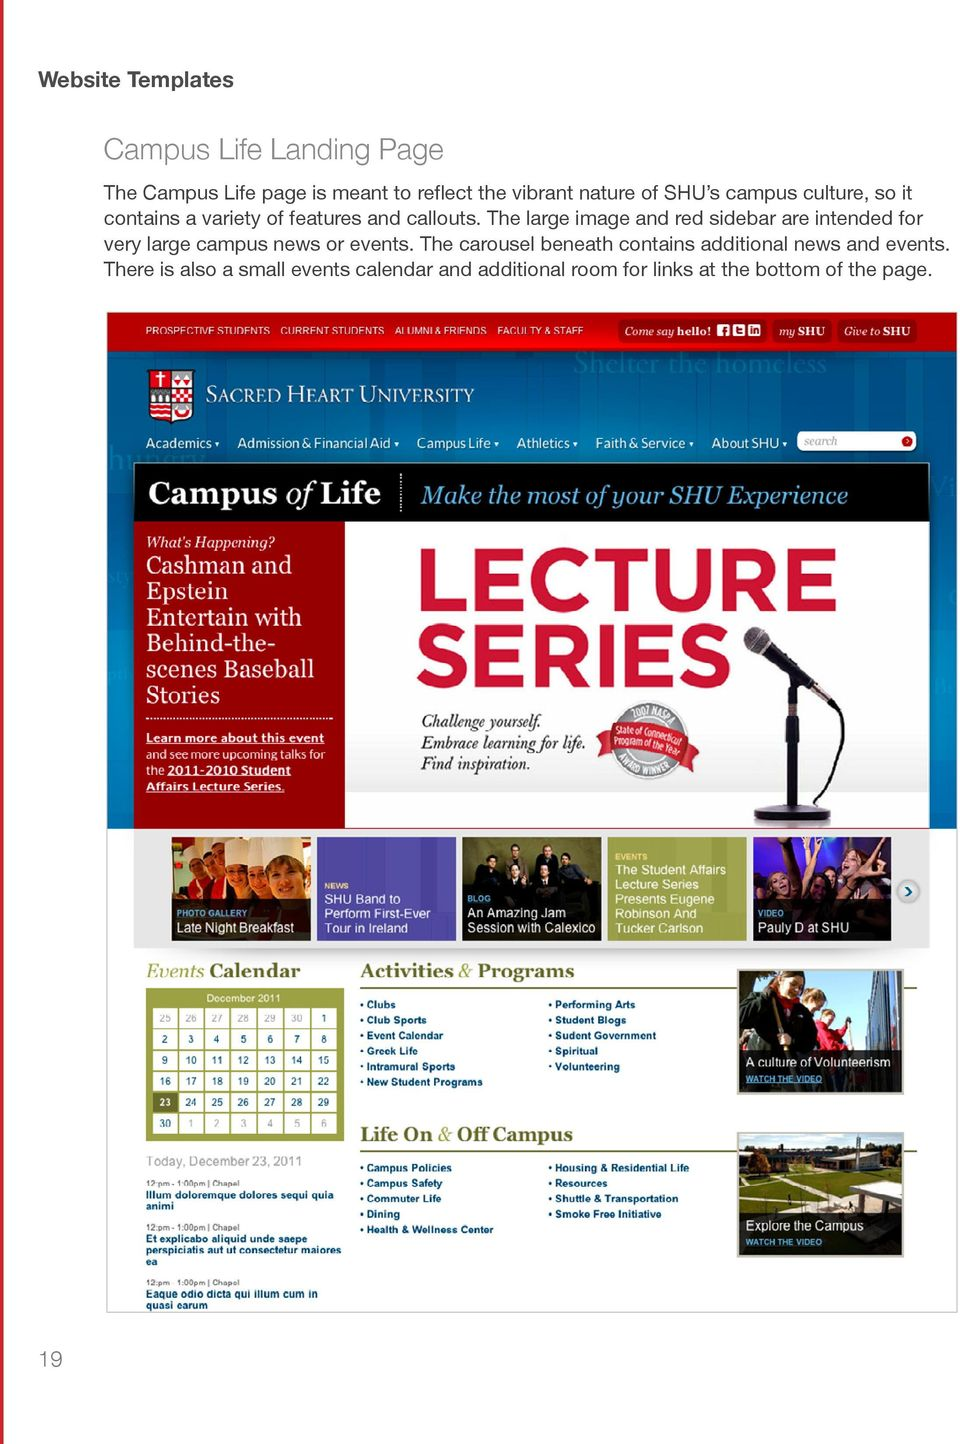 The large image and red sidebar are intended for very large campus news or events.